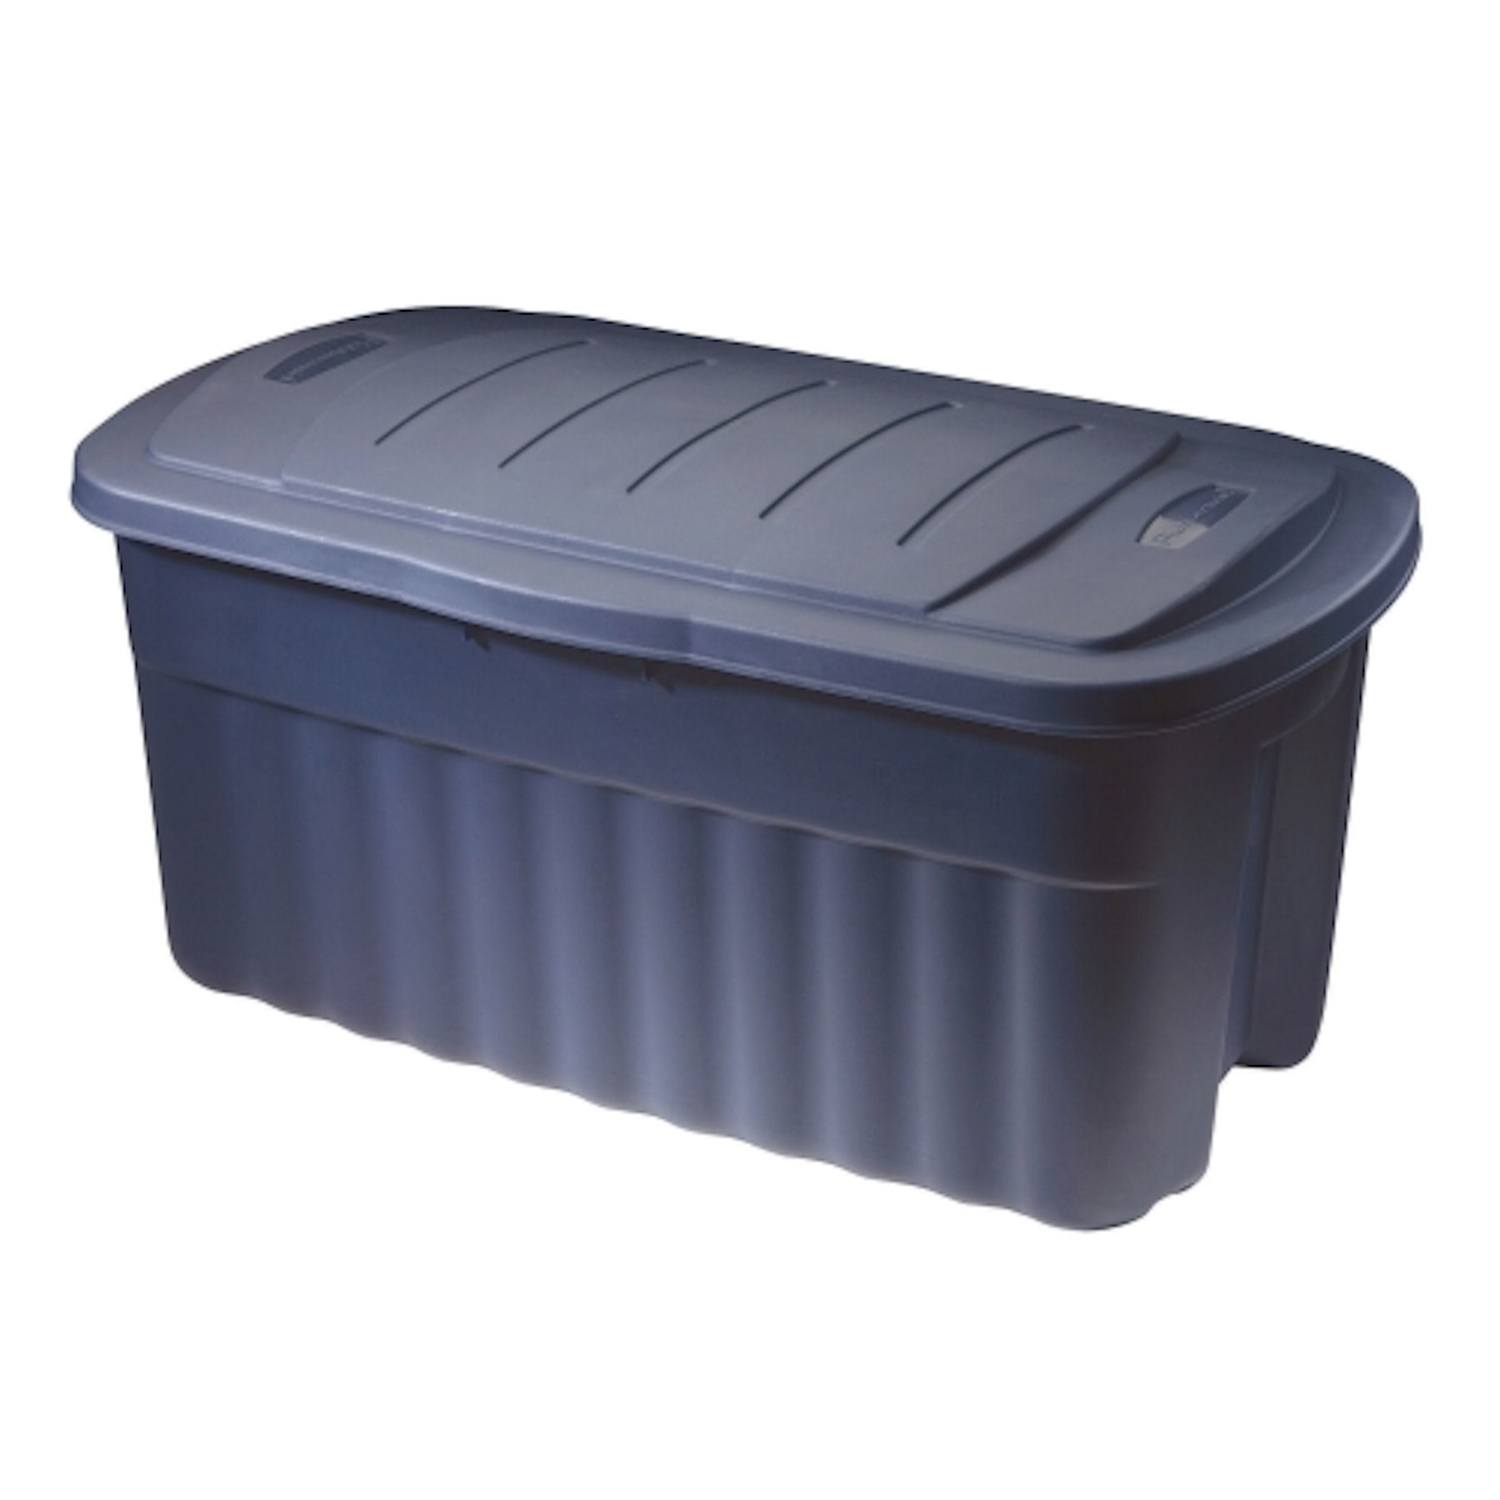 Rubbermaid  Roughneck  21.3 in. H x 36.9 in. D x 18.3 in. W Stackable Storage Box